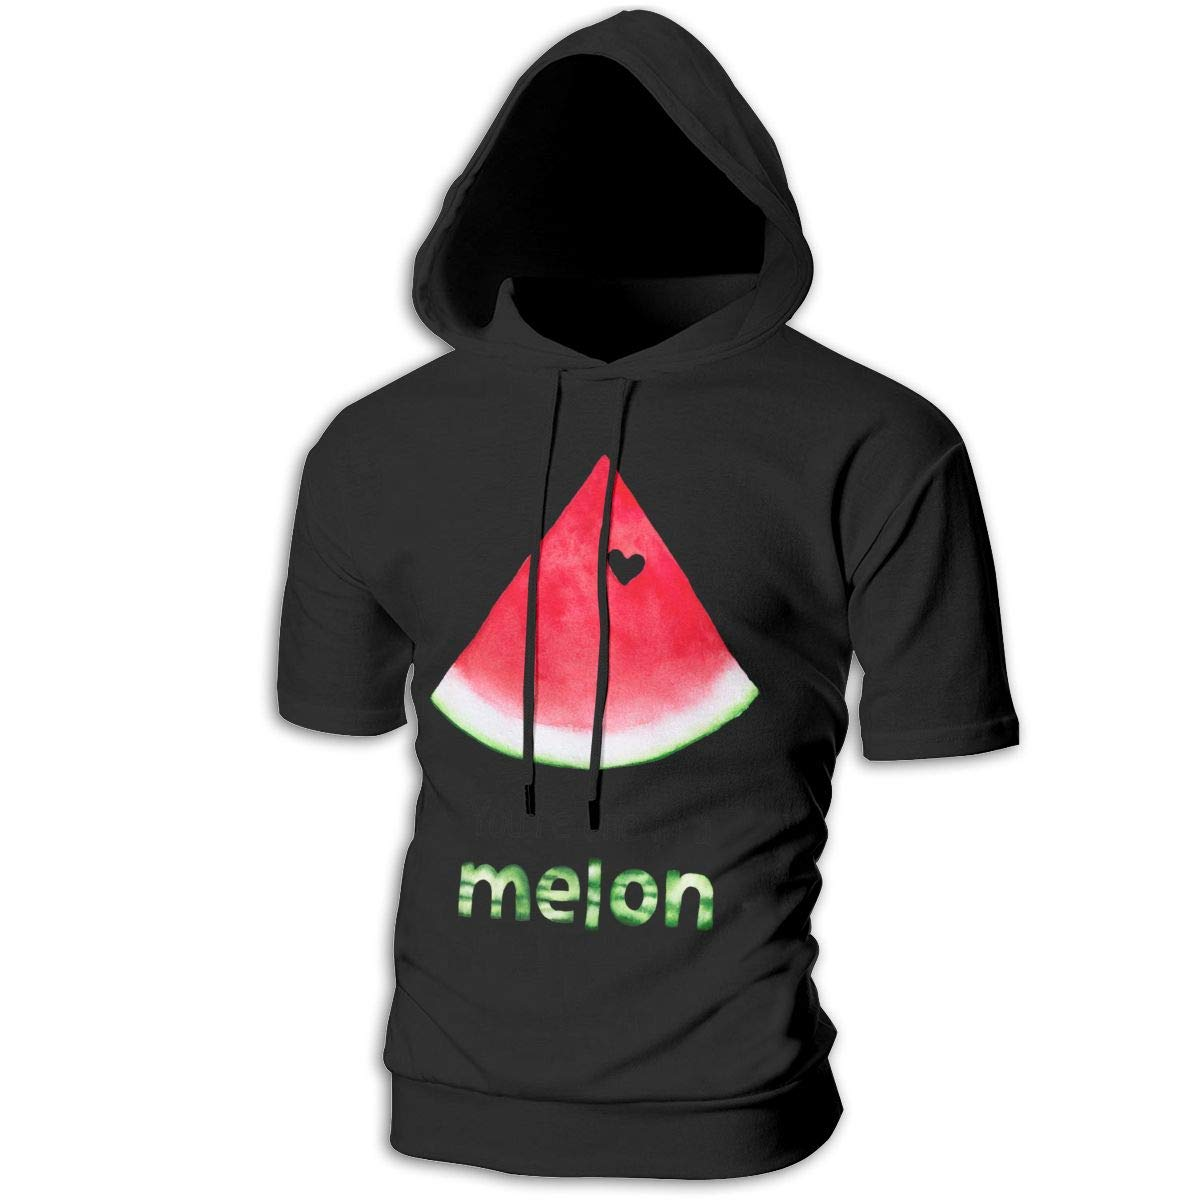 Hengteng Customized Fashion Man with Hood Youre One in A Melon Hoodie